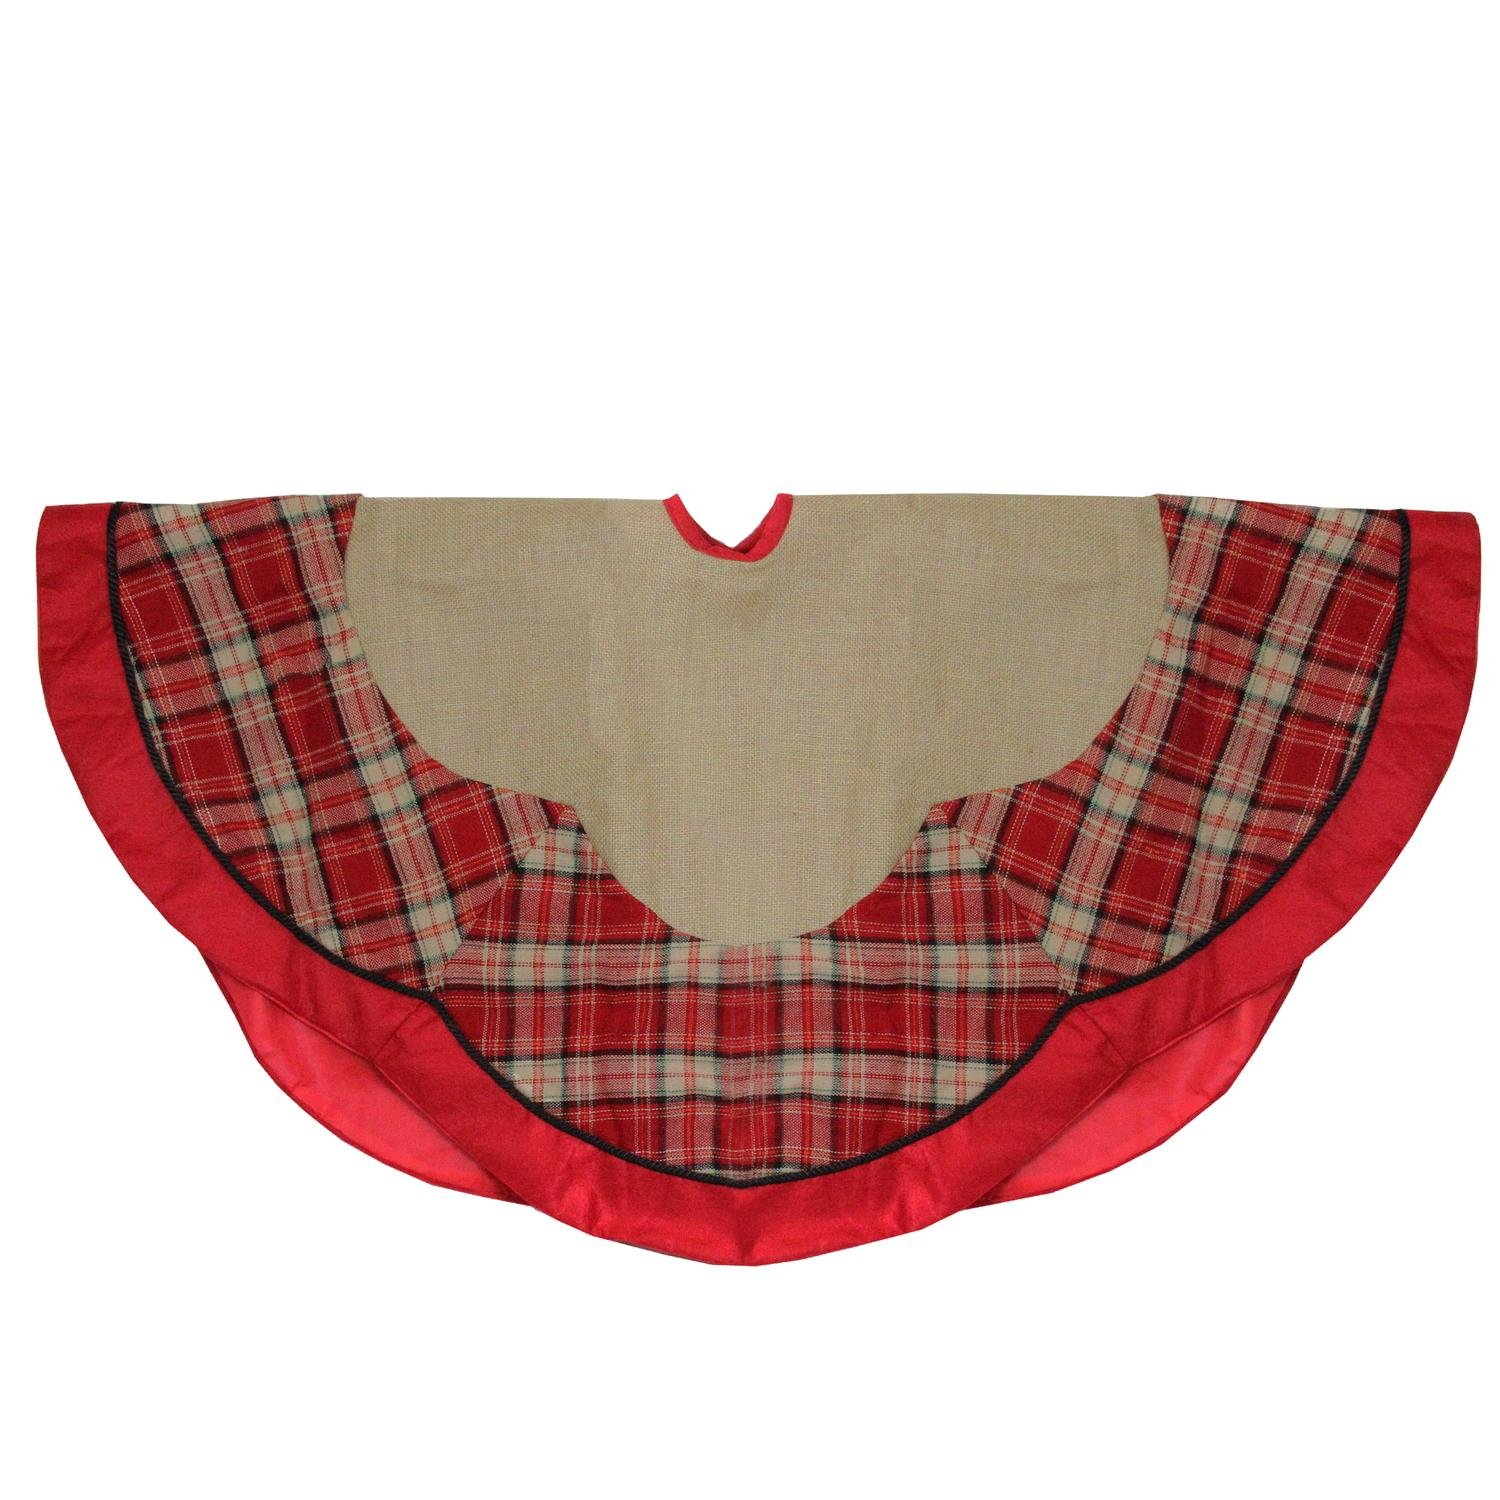 Northlight Countryside Burlap and Red Plaid Christmas Tree Skirt with Scalloped Border, 48''